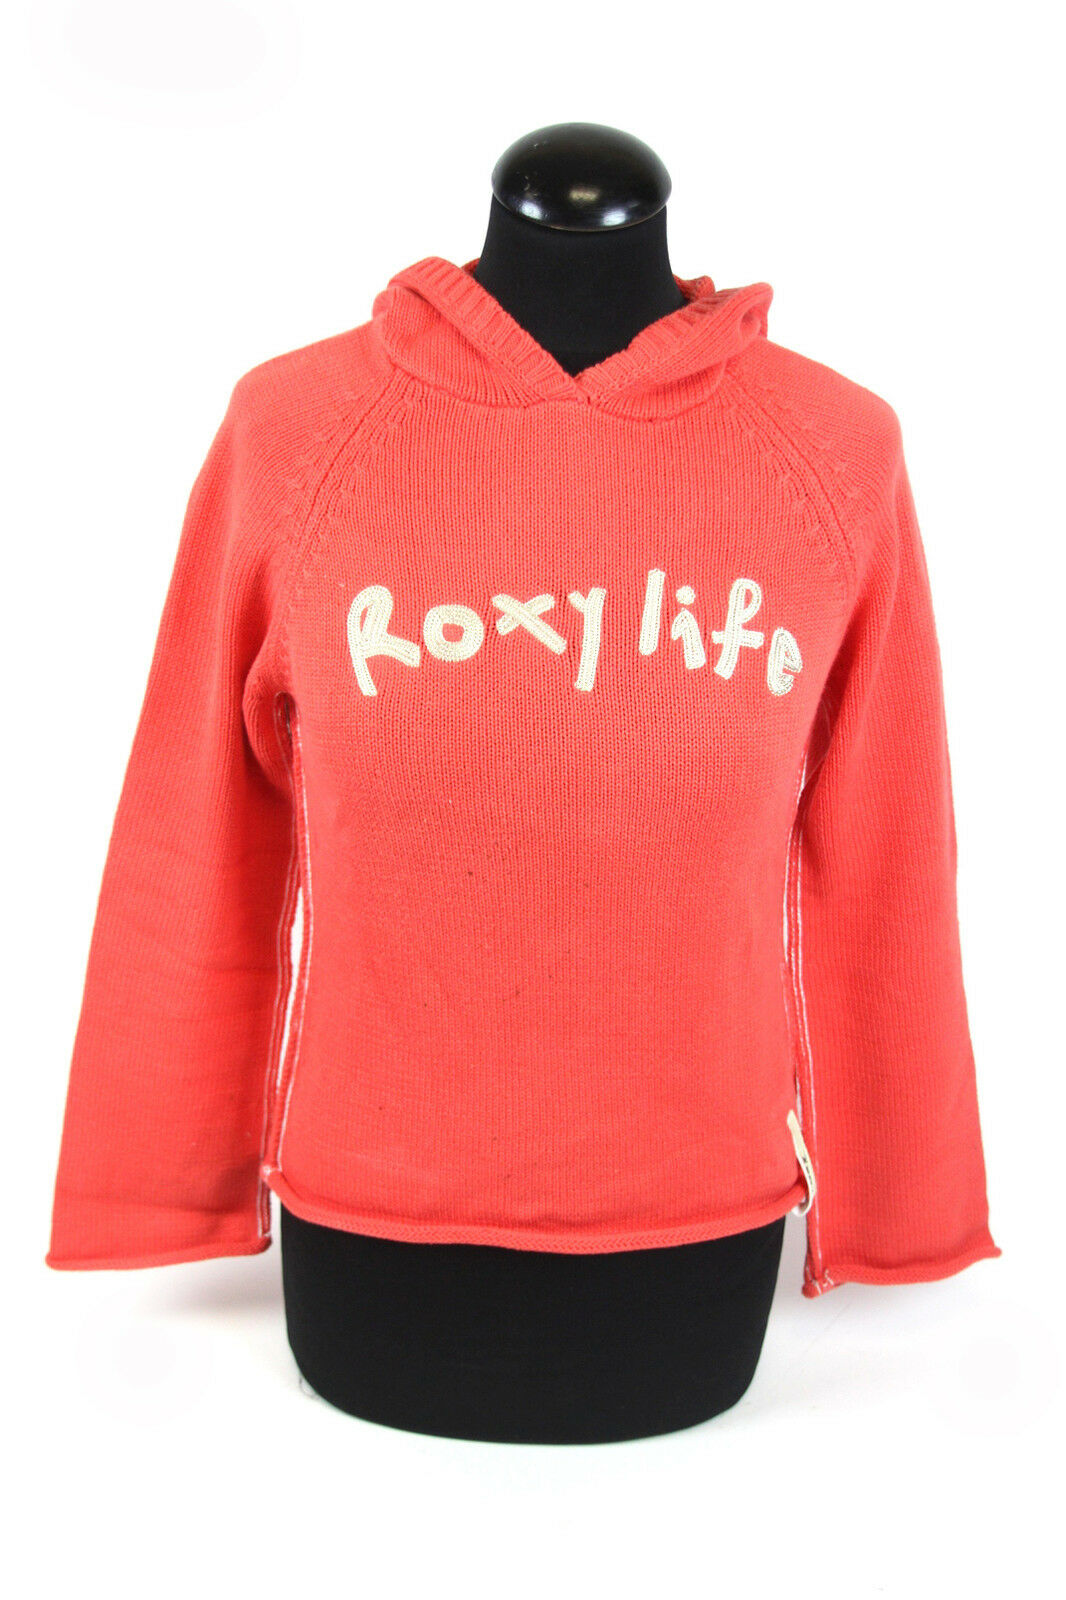 Quicksilver Roxy Life Womens Hoodie Size S/M Orange Knitted Jumper